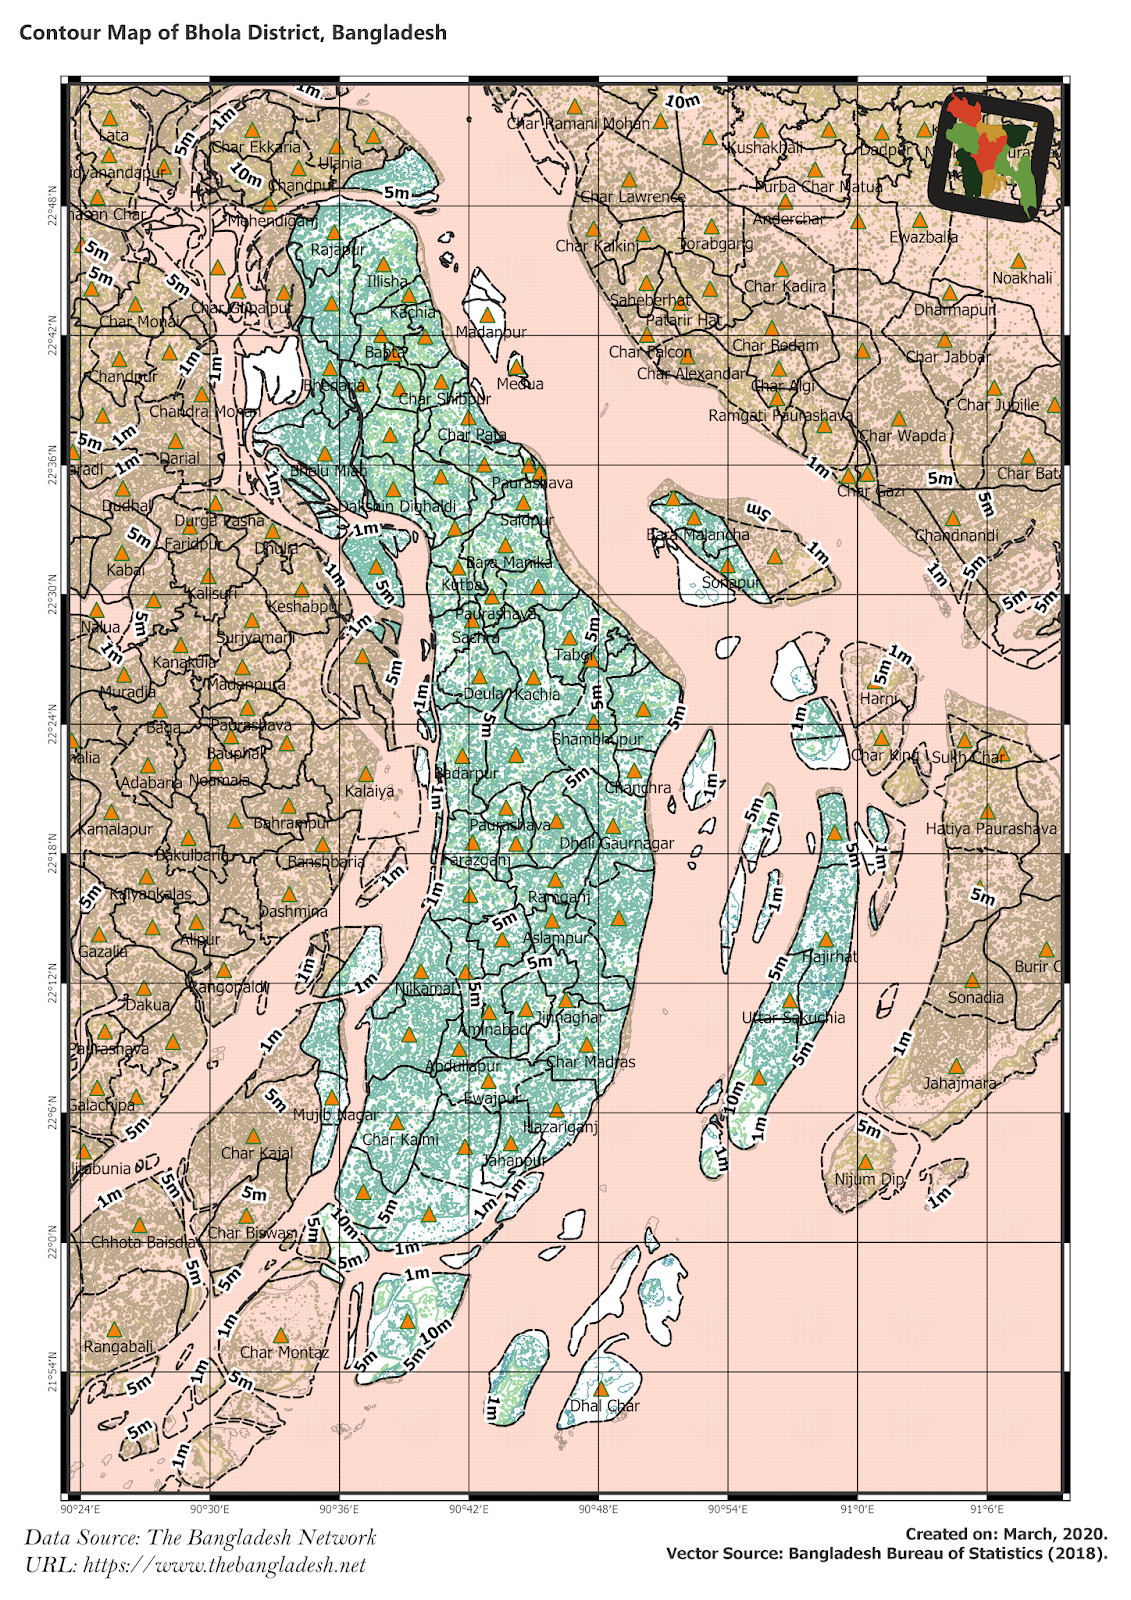 Elevation Map of Bhola District of Bangladesh